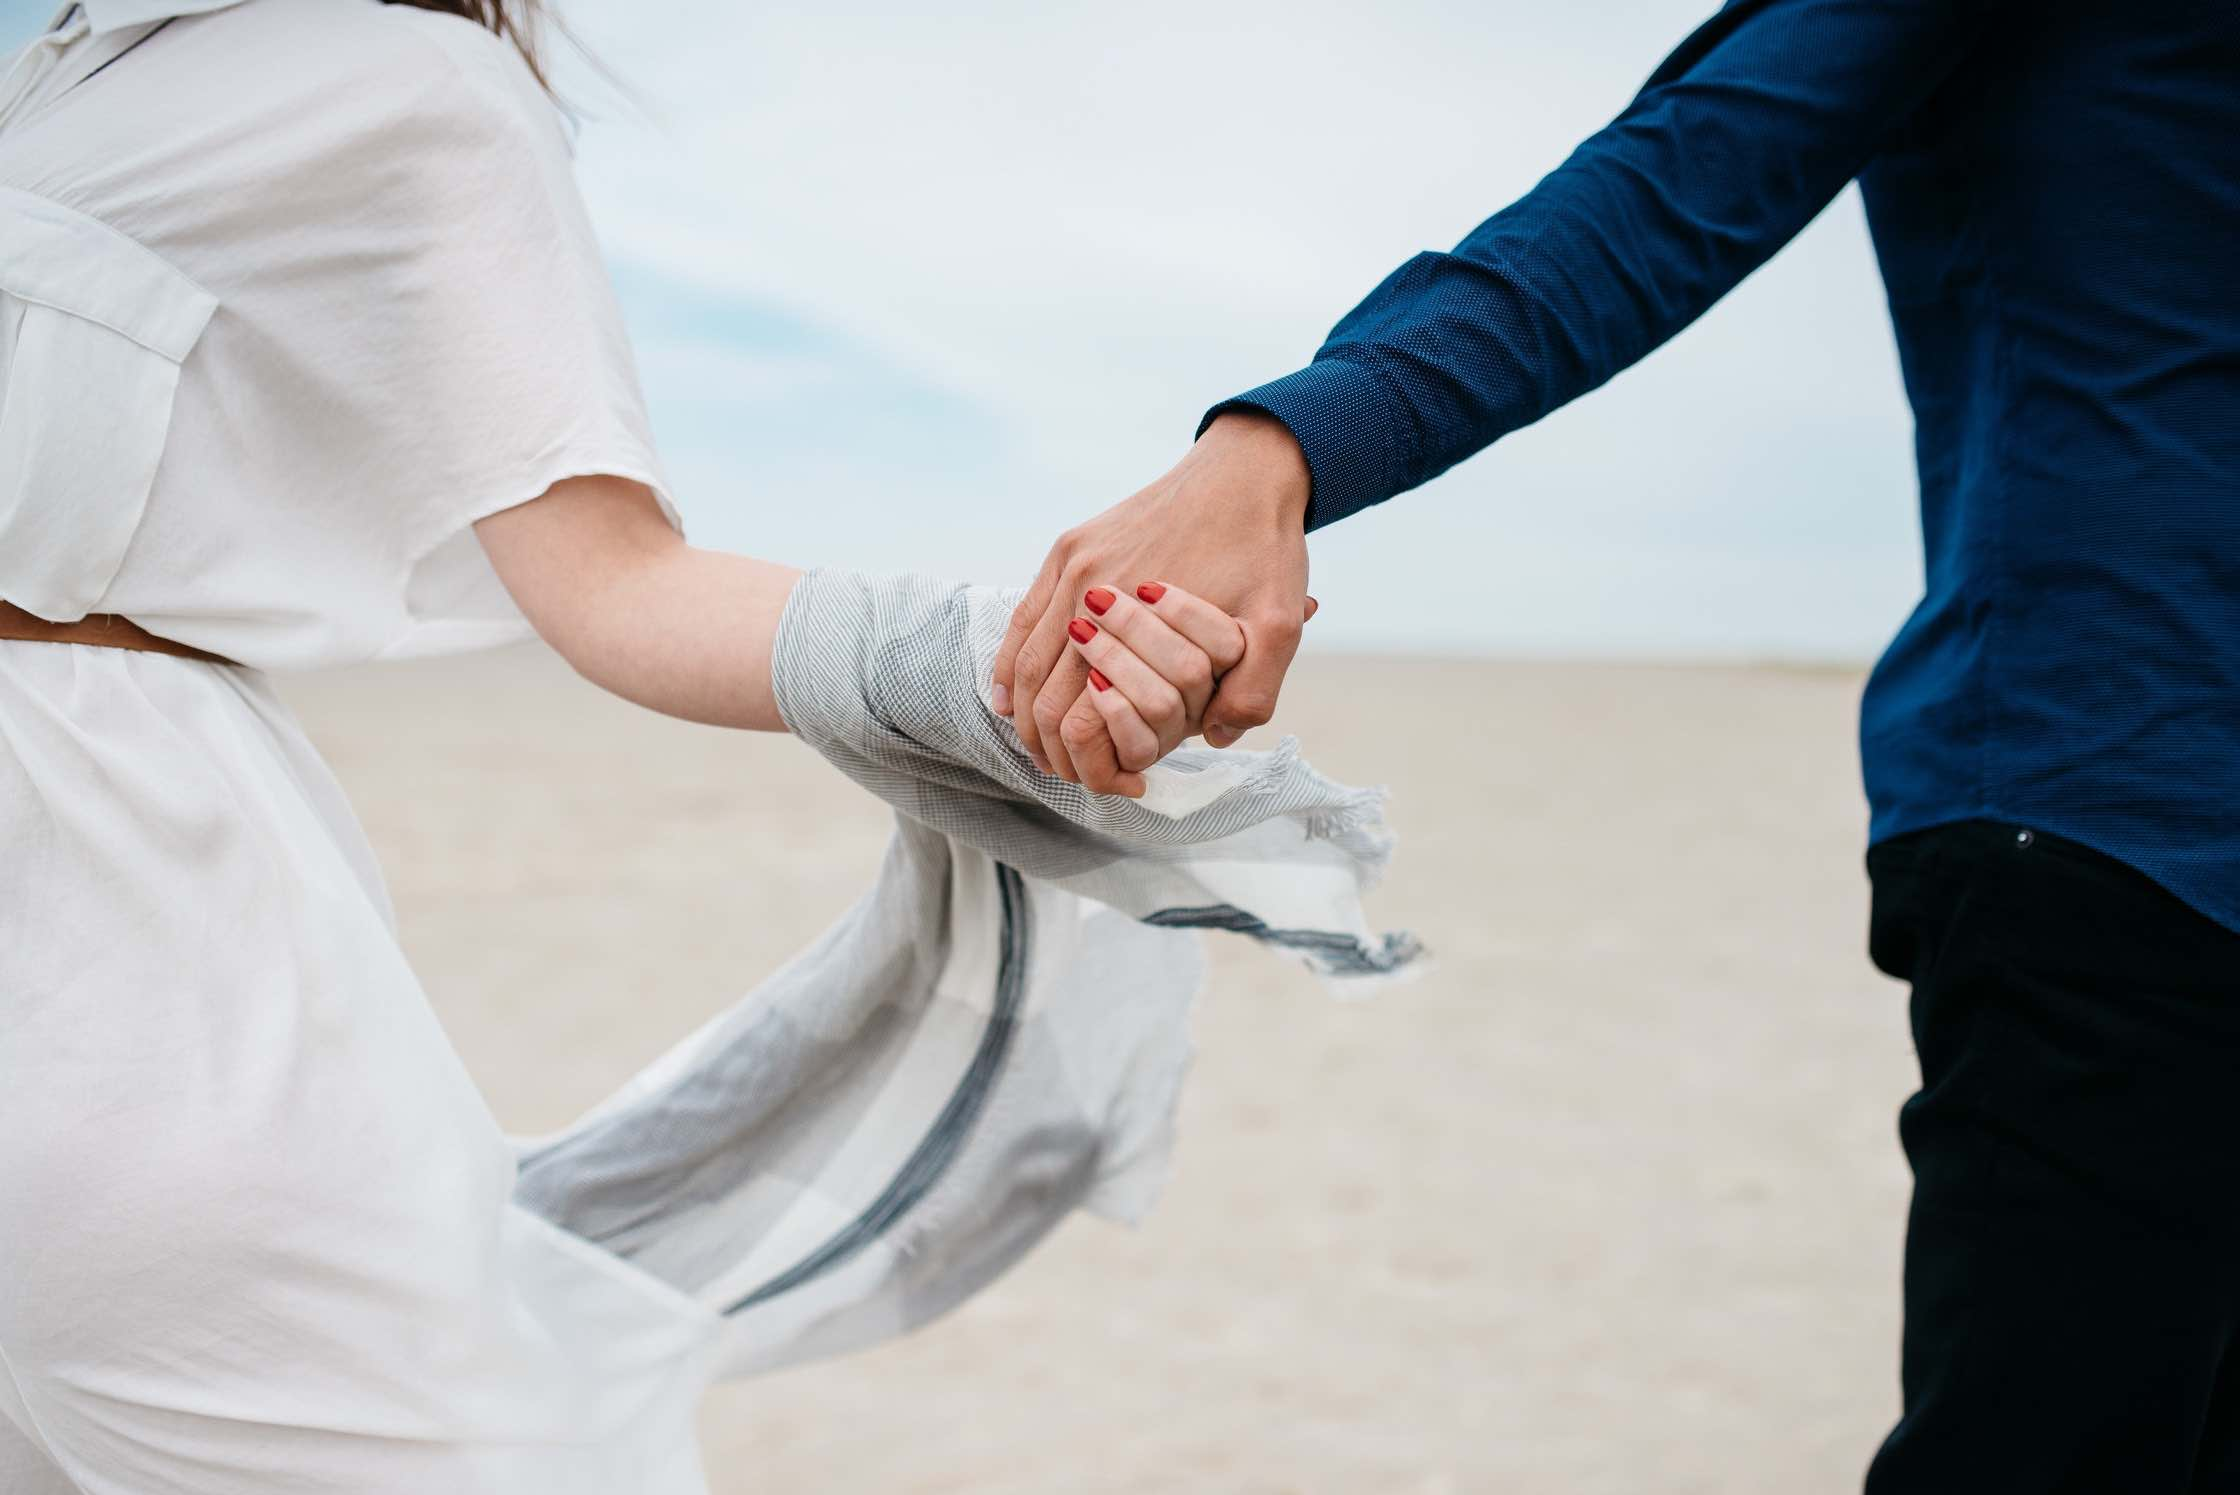 1 mindful conversation per day - Improve the connection with your spouse and invest in the future of your relationship.